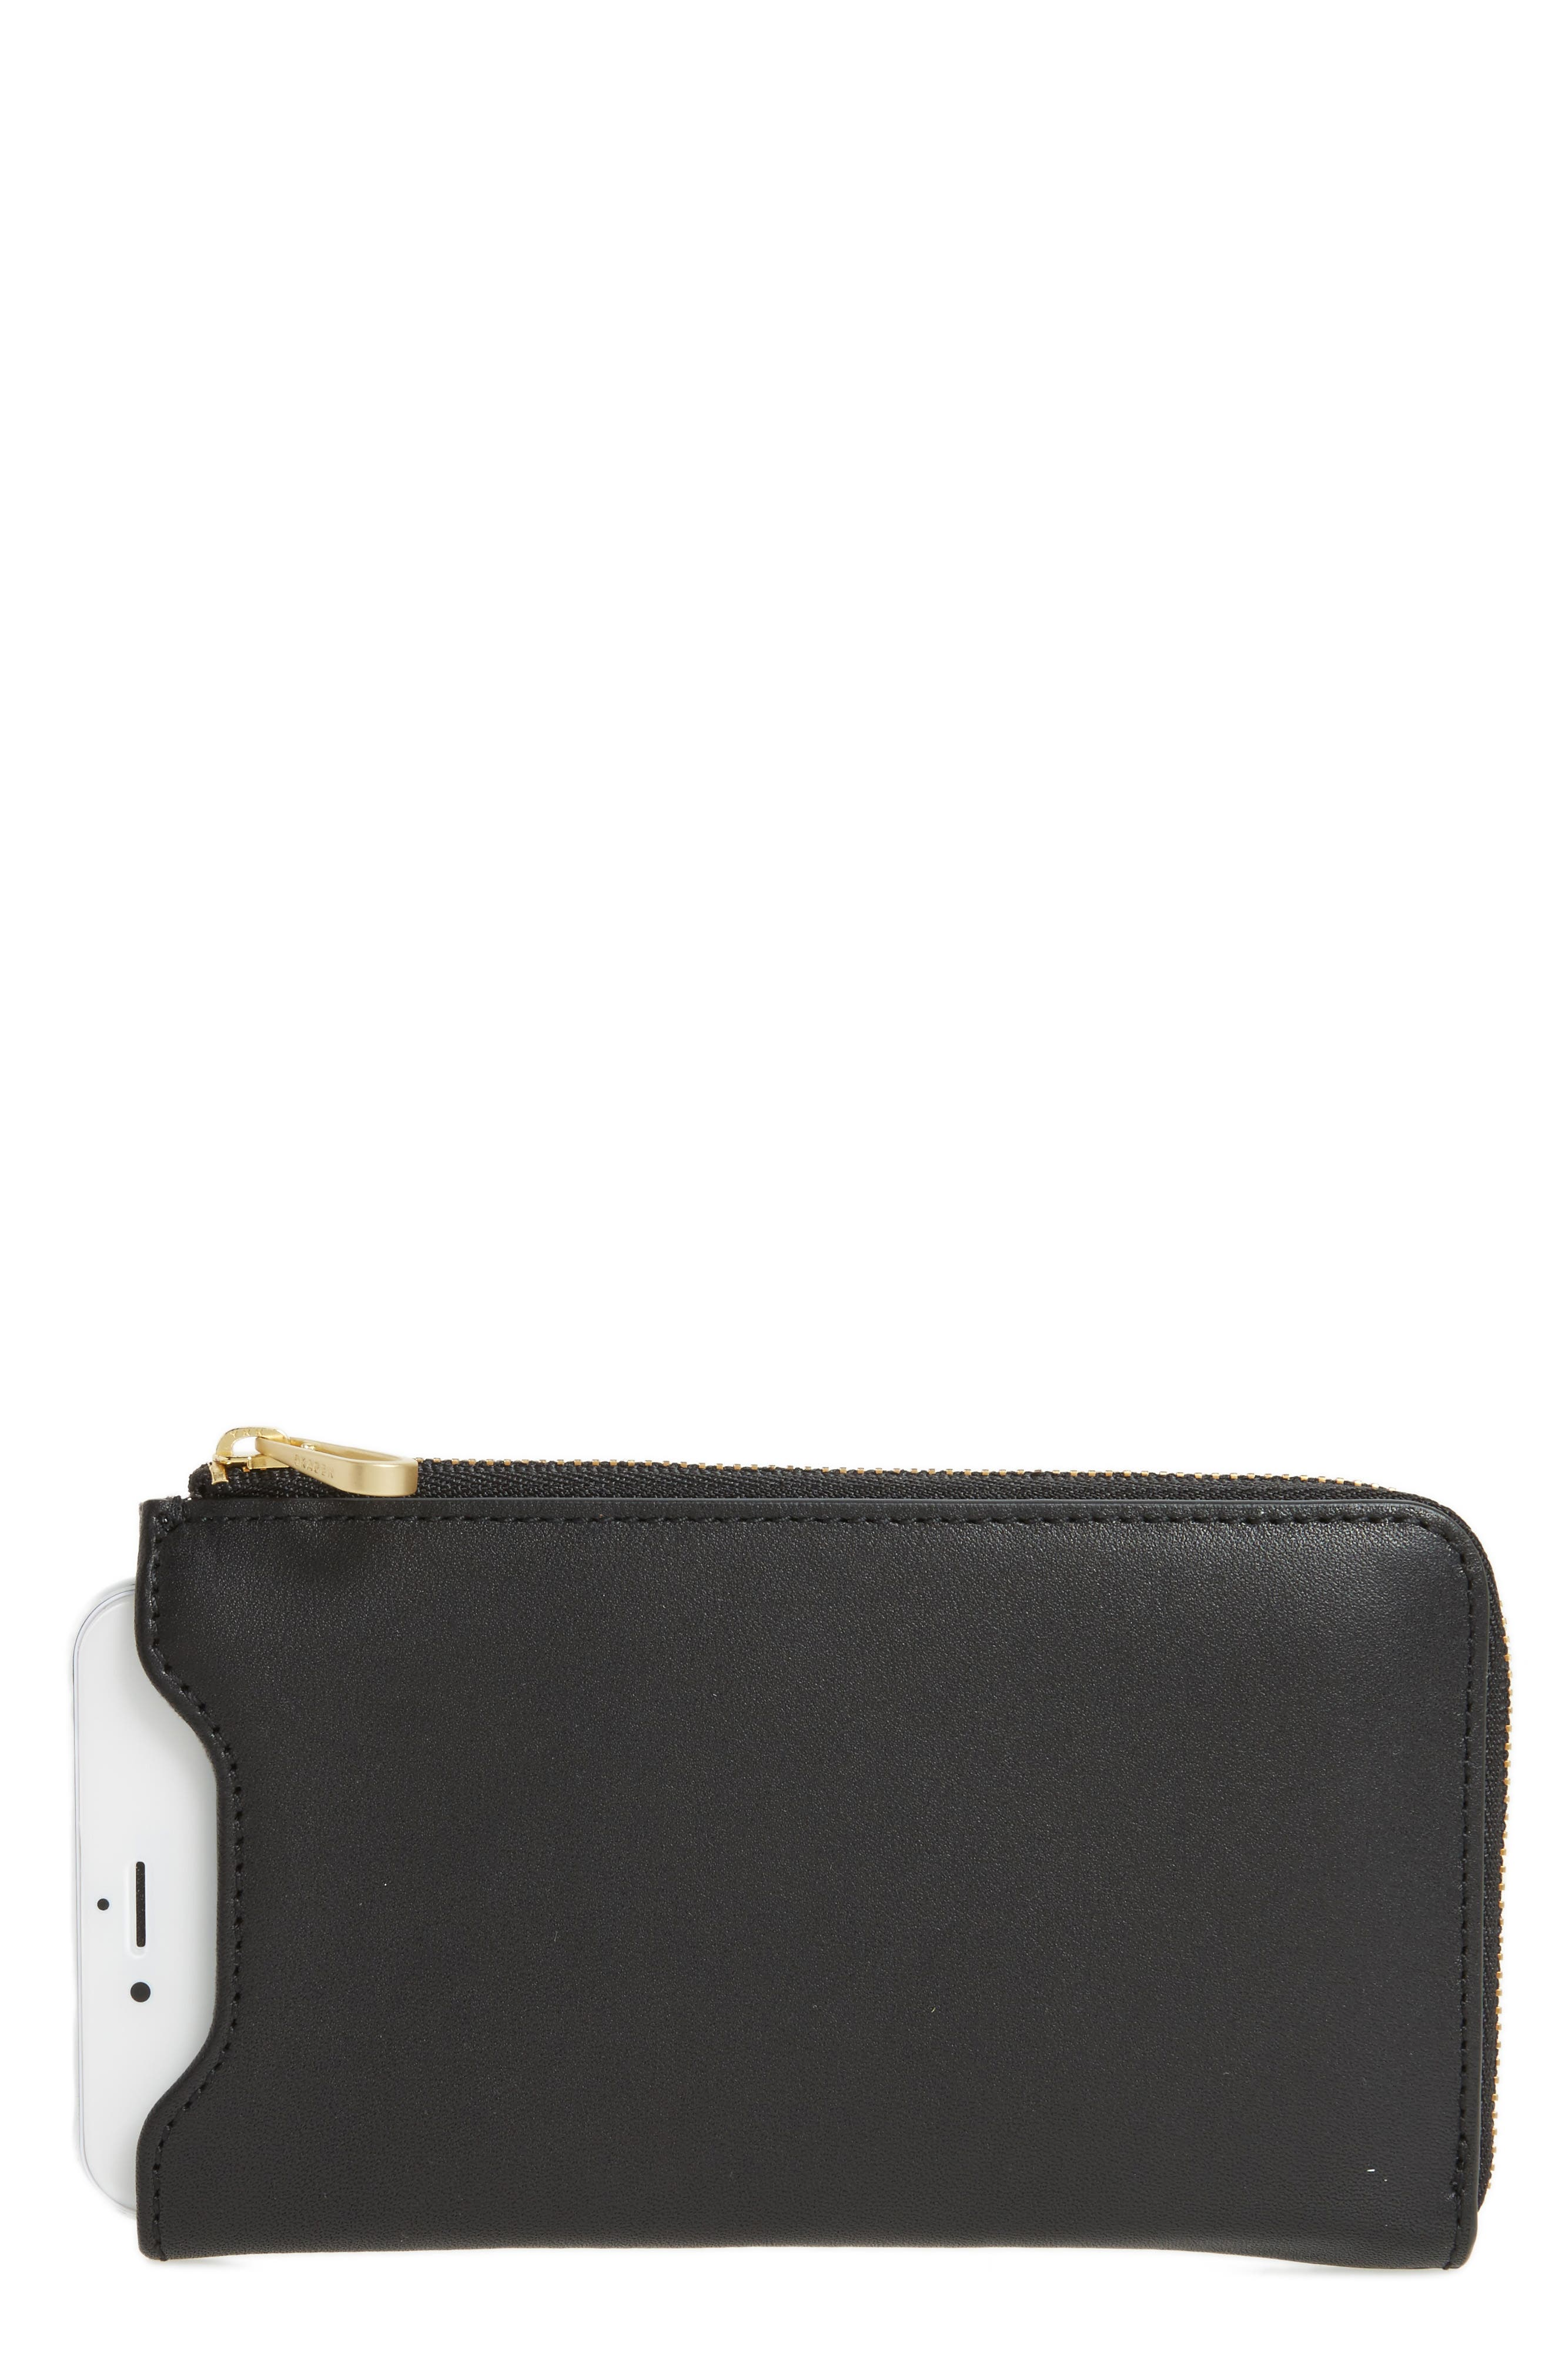 Lilli iPhone 6/6s/7 Leather Sleeve,                         Main,                         color, 001